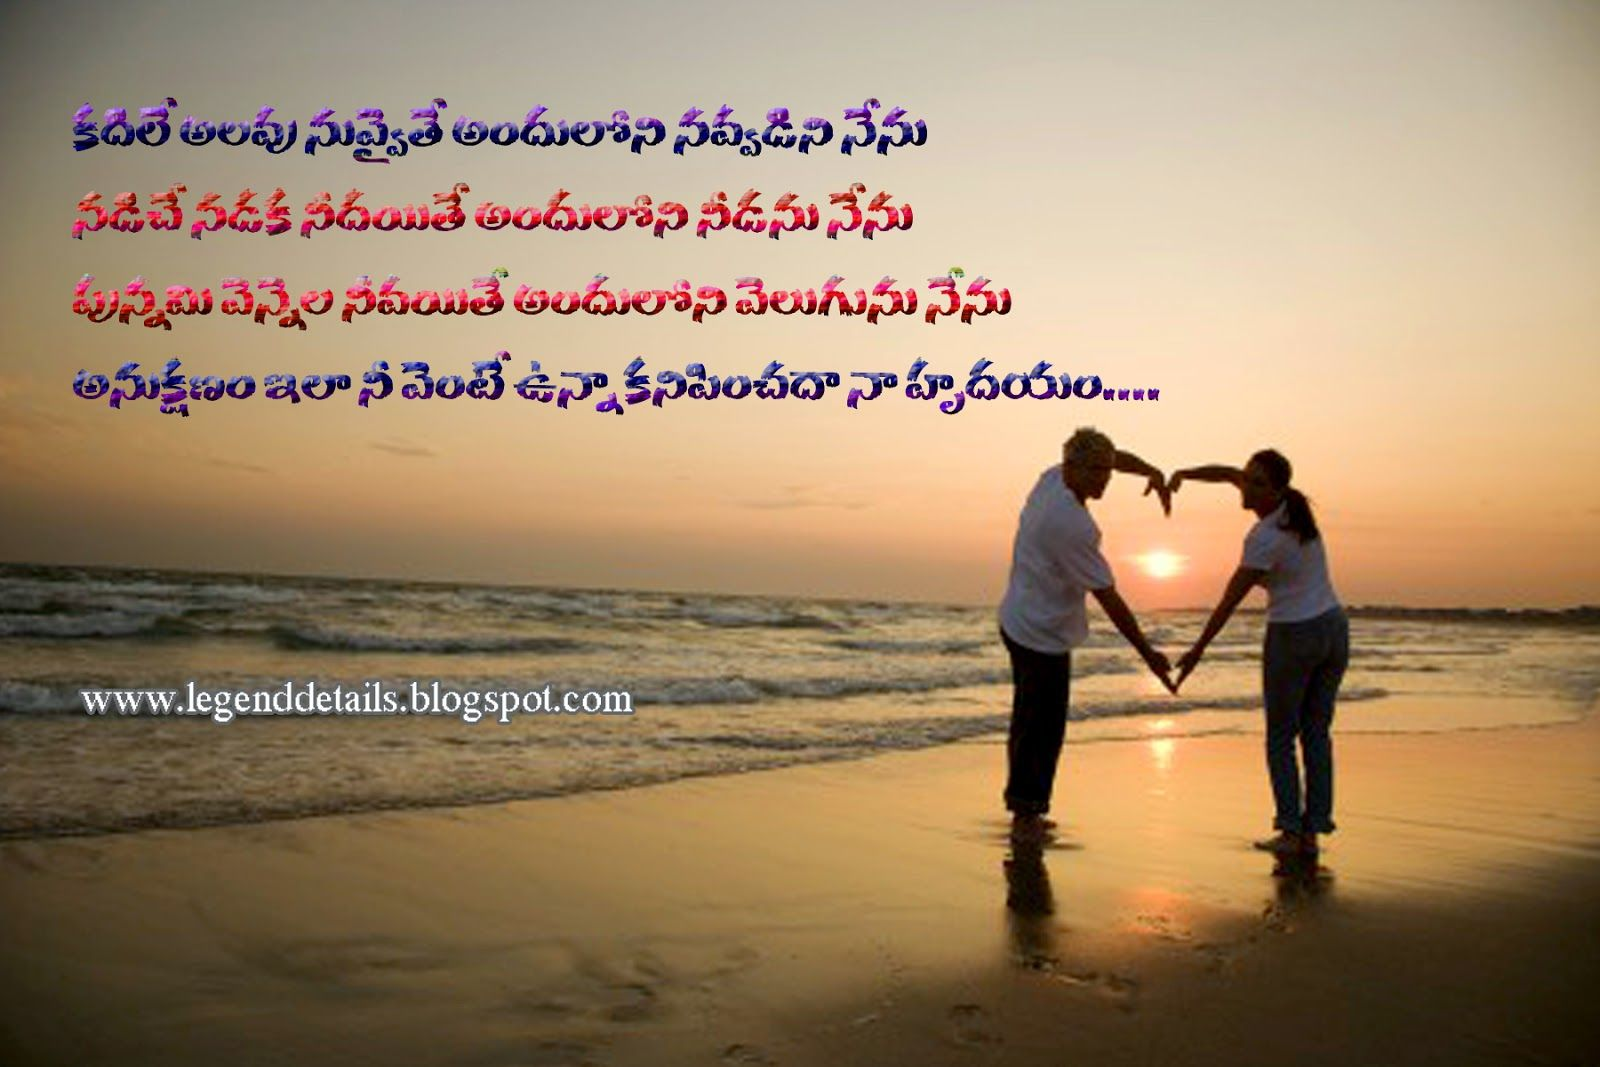 In Depth Love Quotes in telugu with images The Legendary